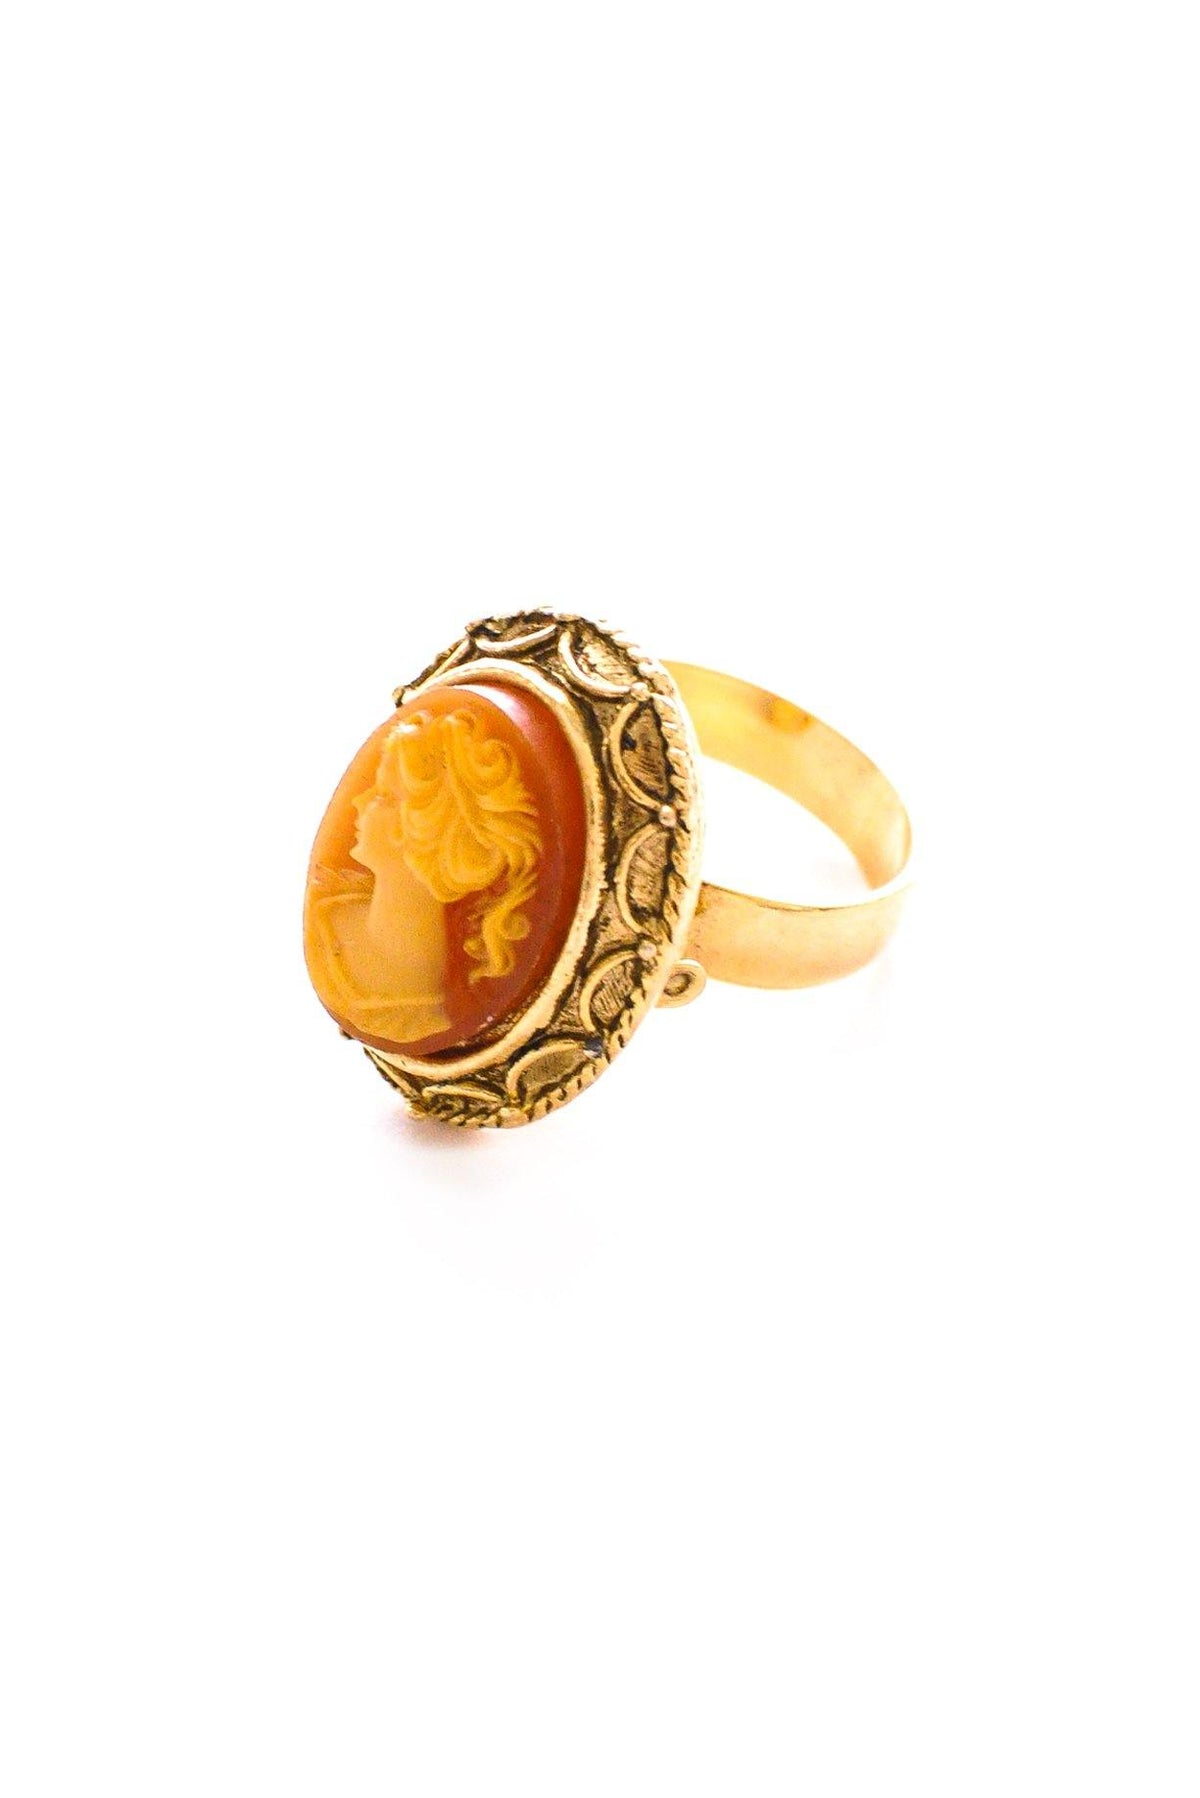 Vintage Cameo cocktail ring from Sweet & Spark.